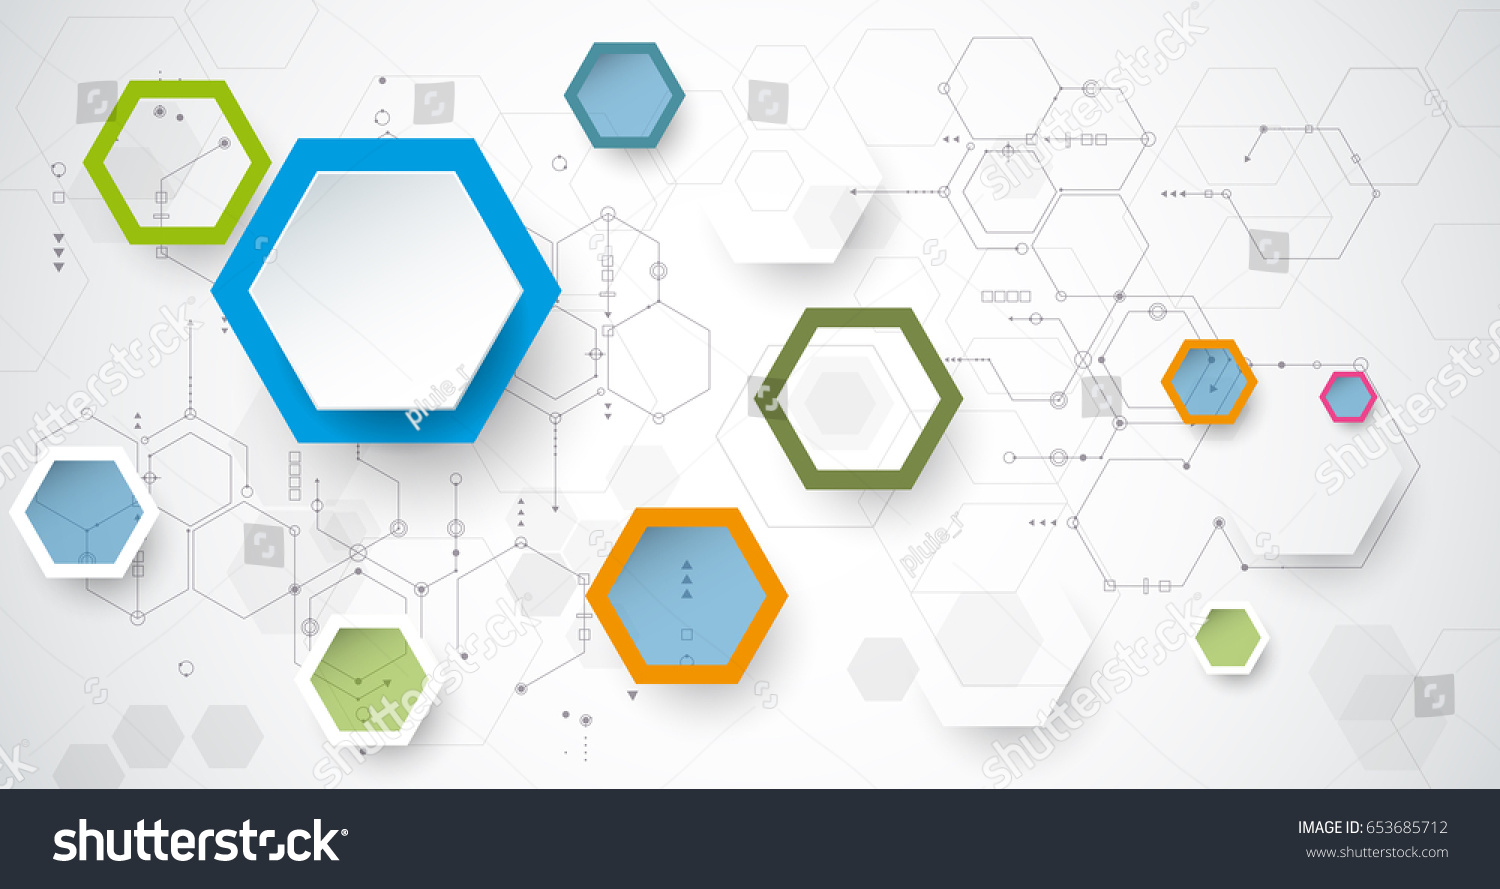 Vector Illustration Circuit Board 3 D Paper Stock Royalty And 3d Hexagons Background Hi Tech Digital Technology